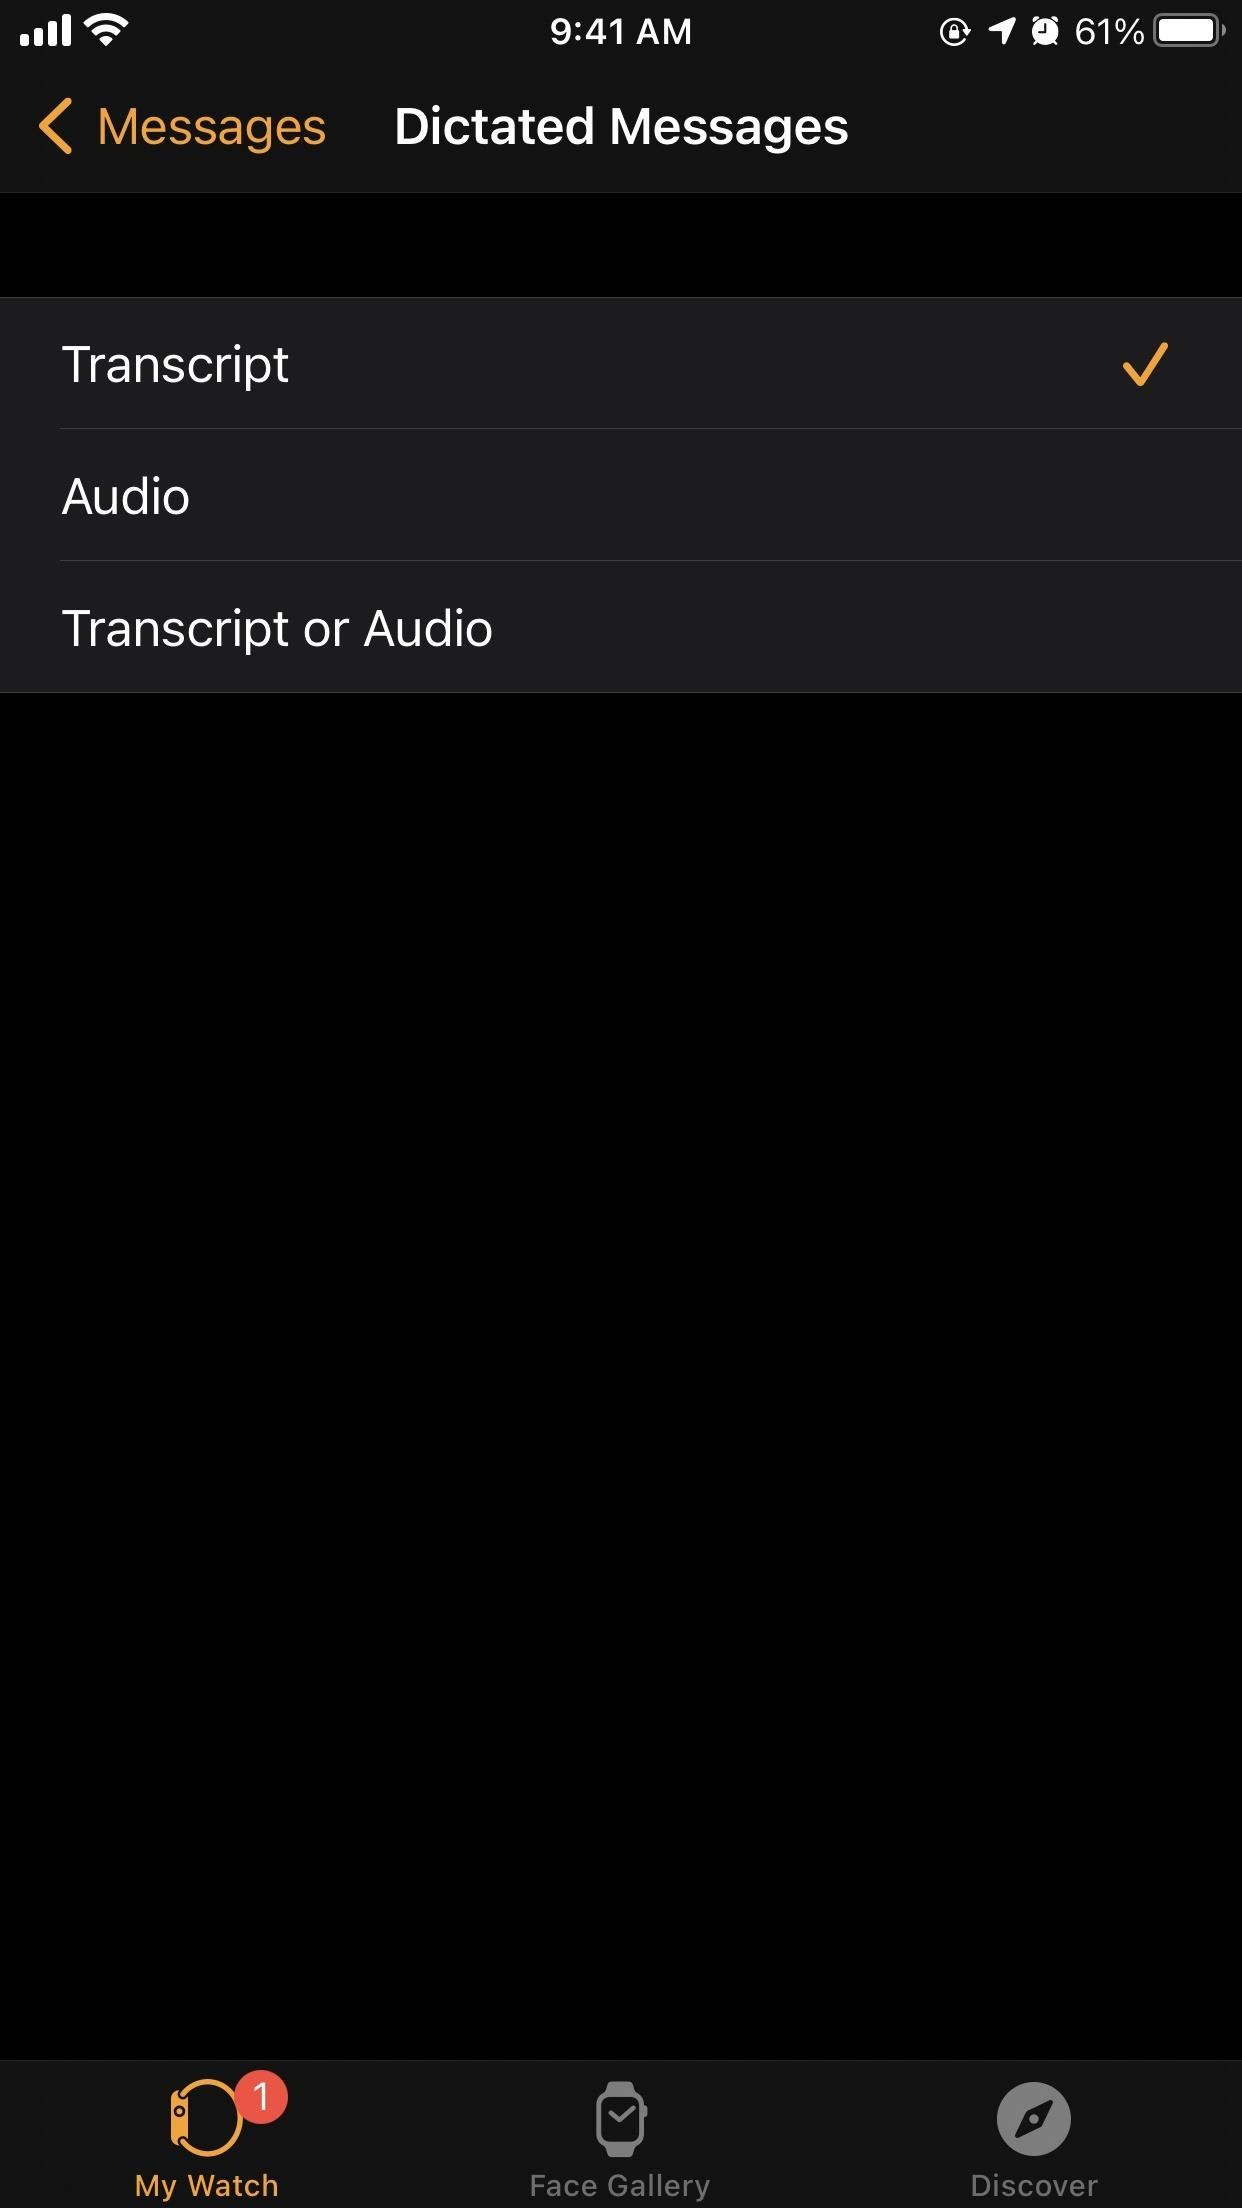 How to Send Audio Messages on Your Apple Watch Instead of Transcribed Text